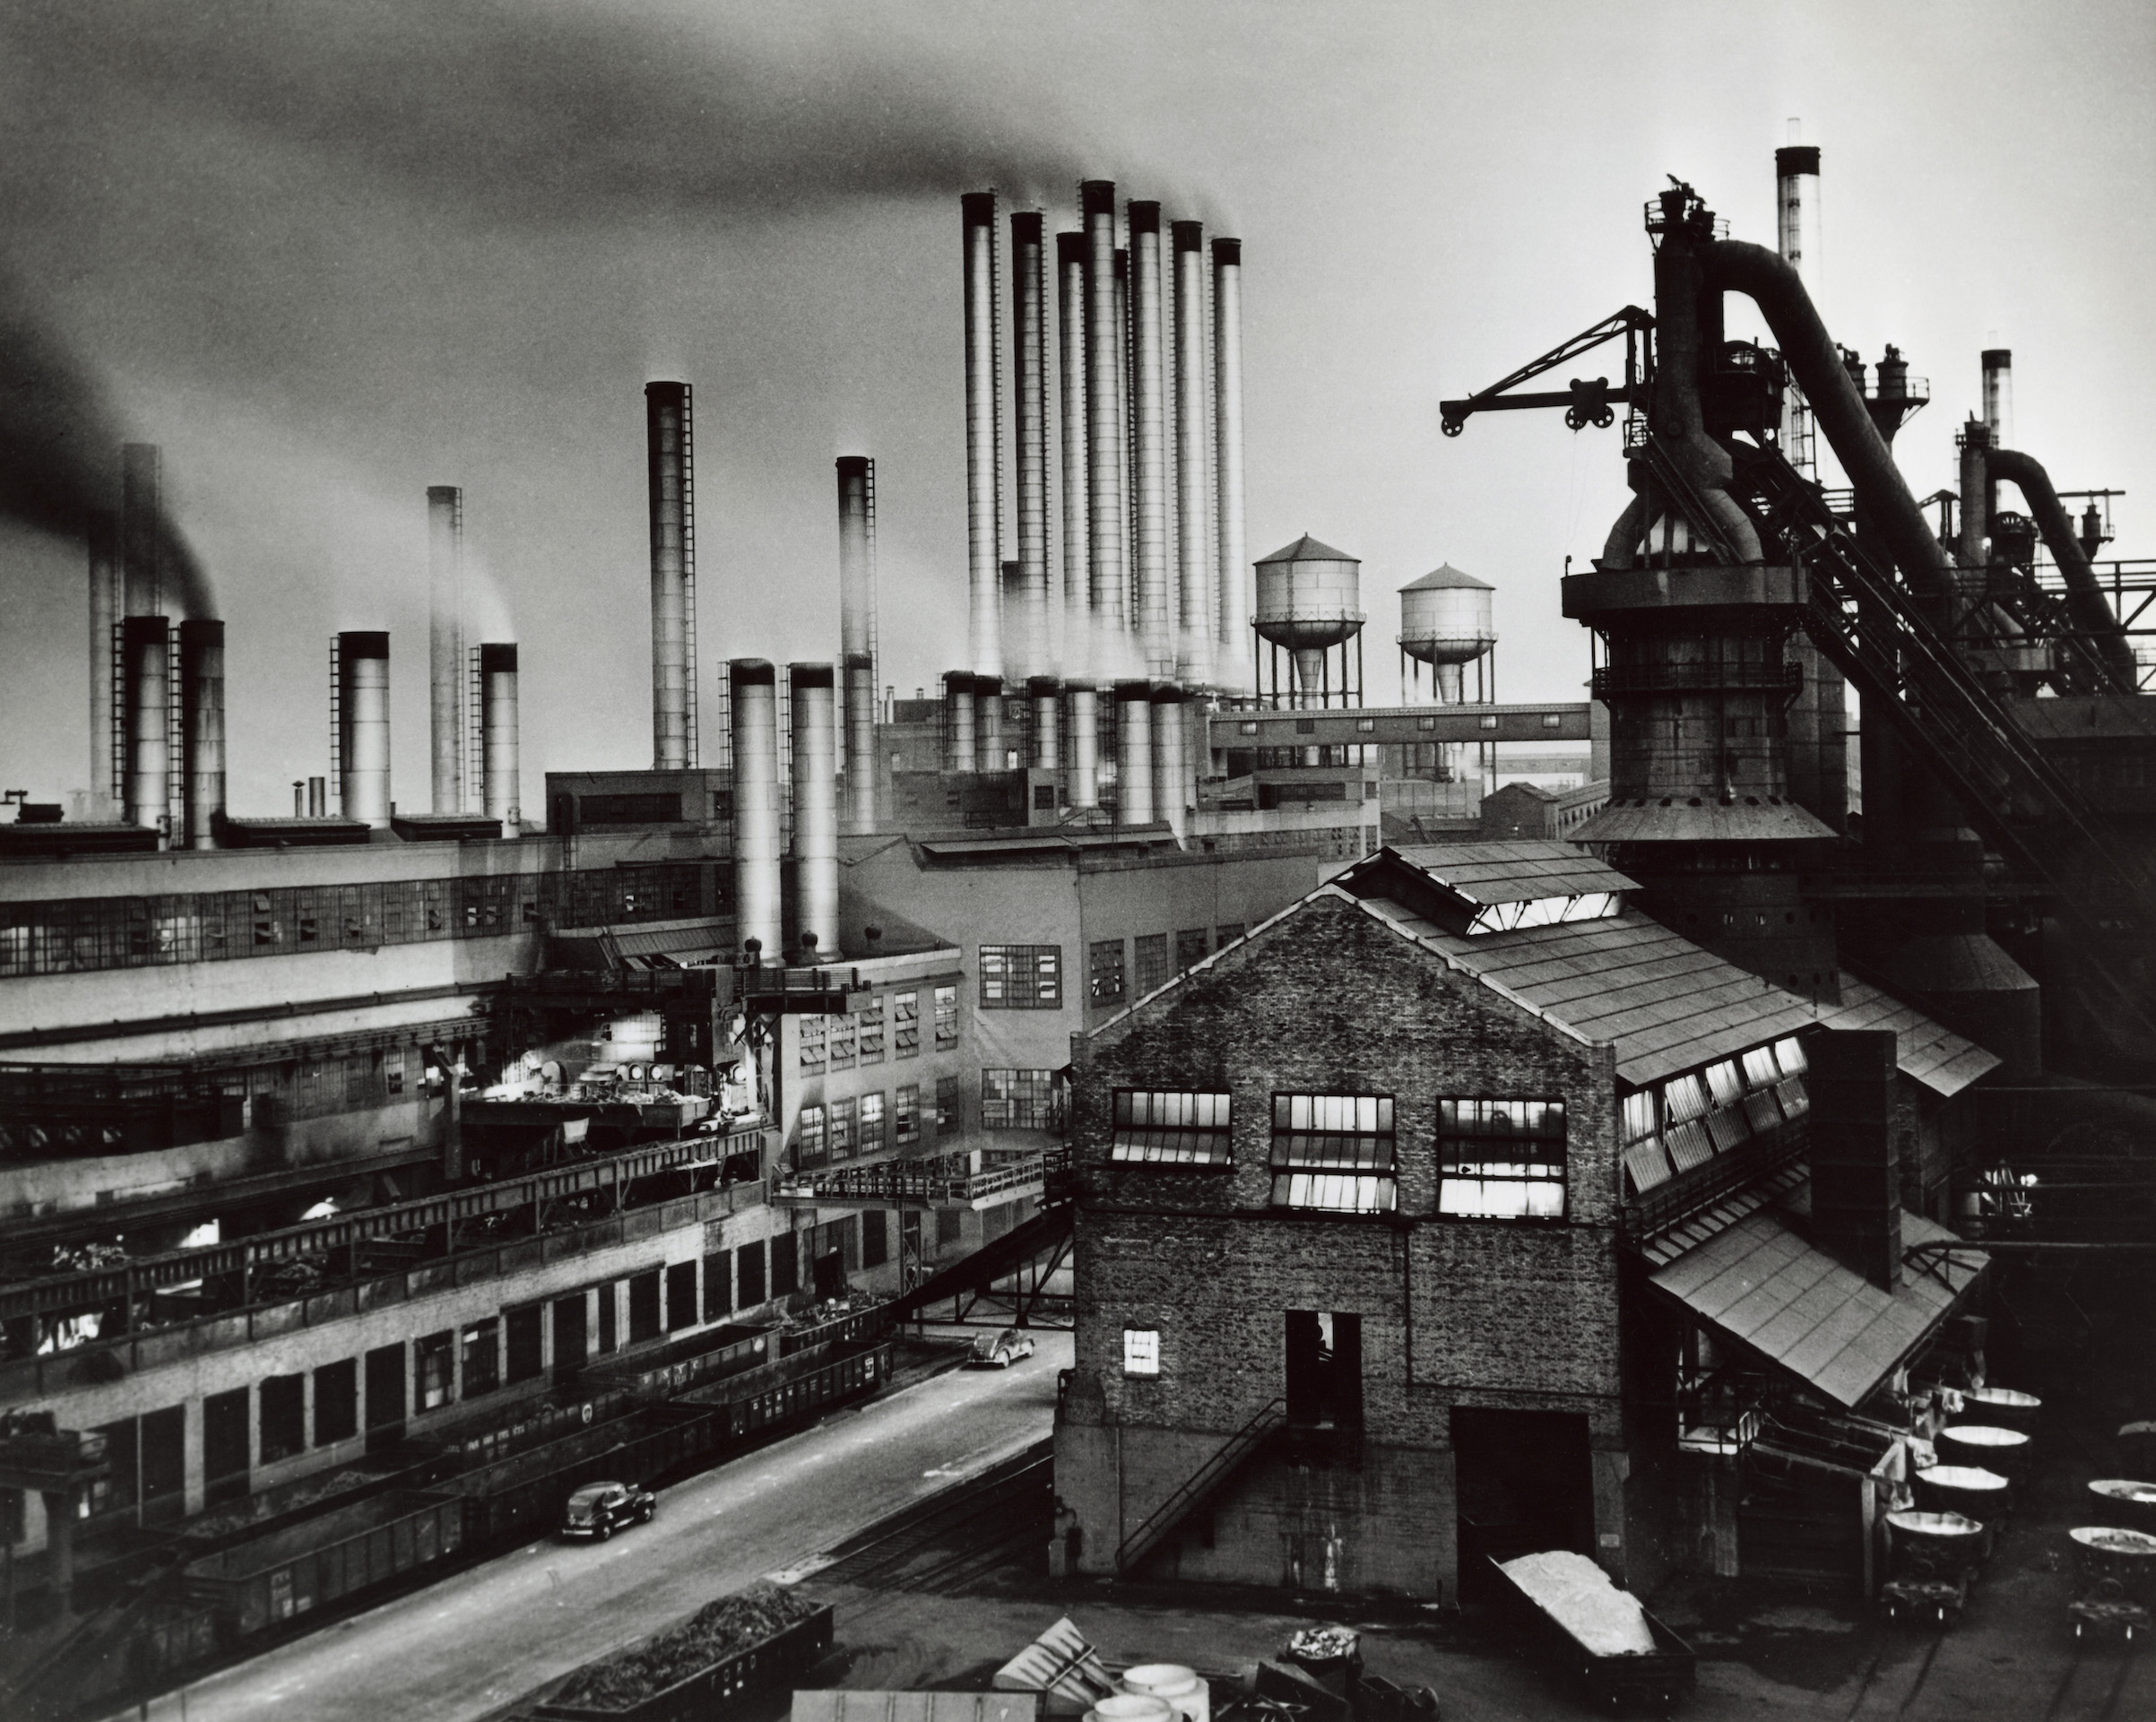 High angle view of the River Rouge Plant, Ford Motor Company, Dearborn, Mich. Undated.